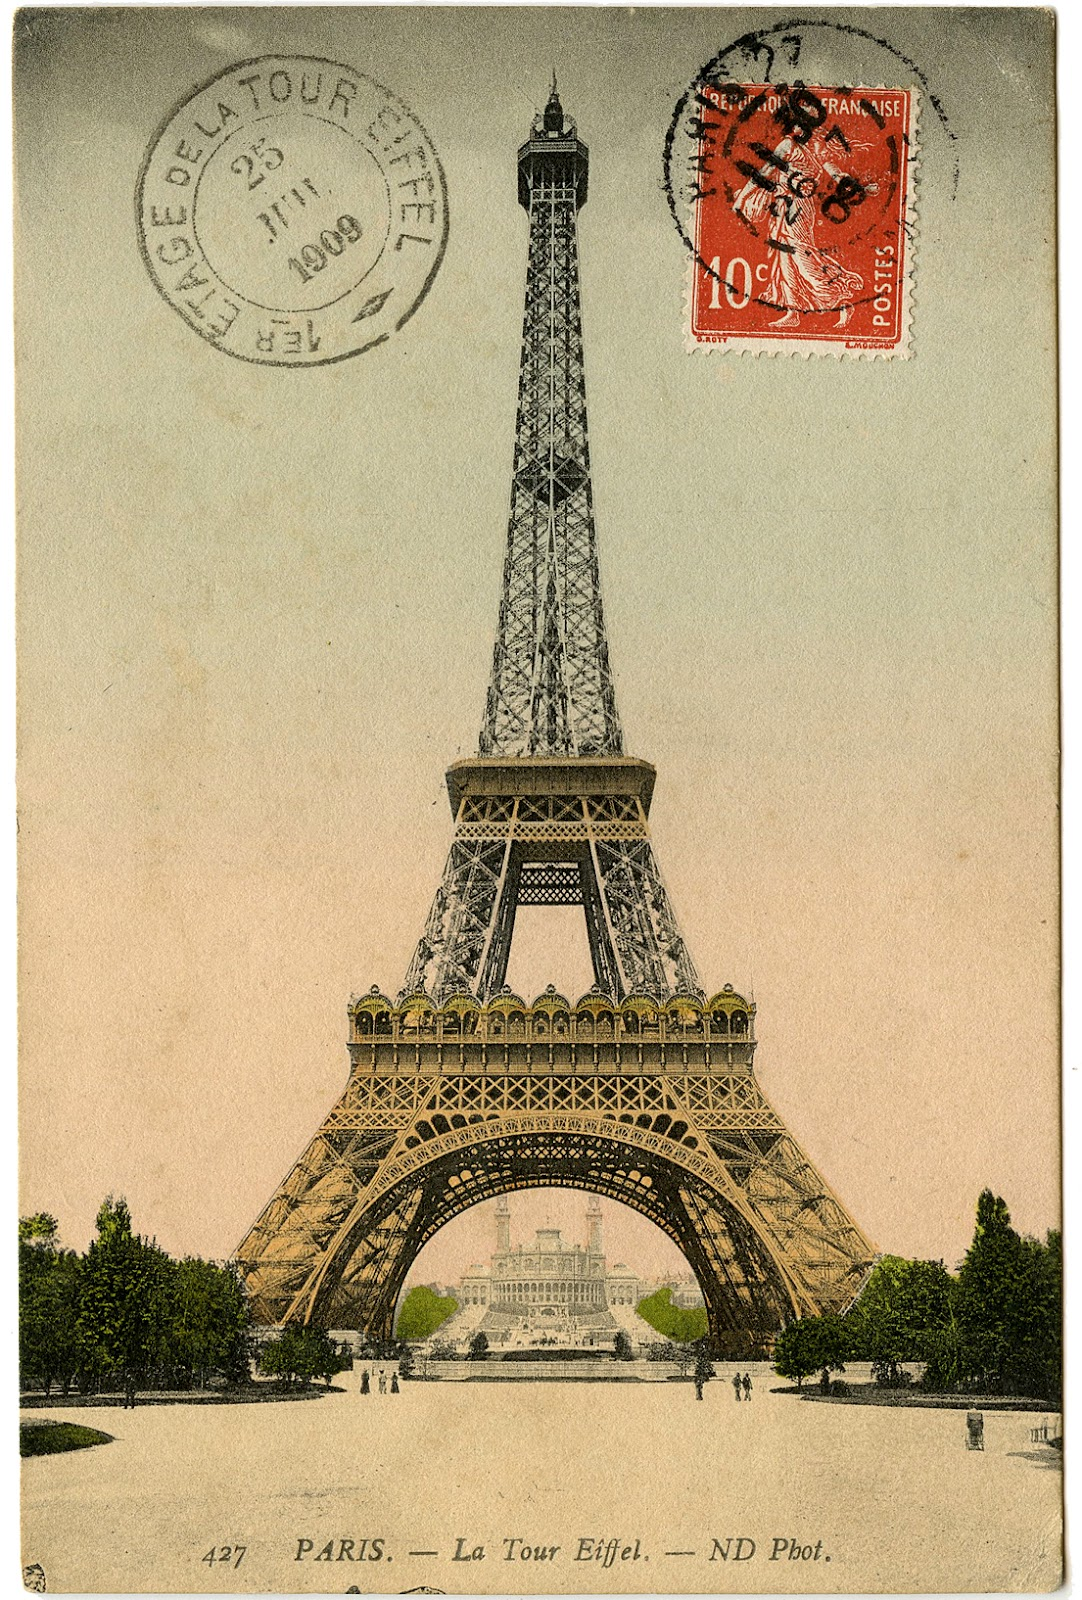 Vintage Image  Eiffel Tower Photo and Postmark  The Graphics Fairy